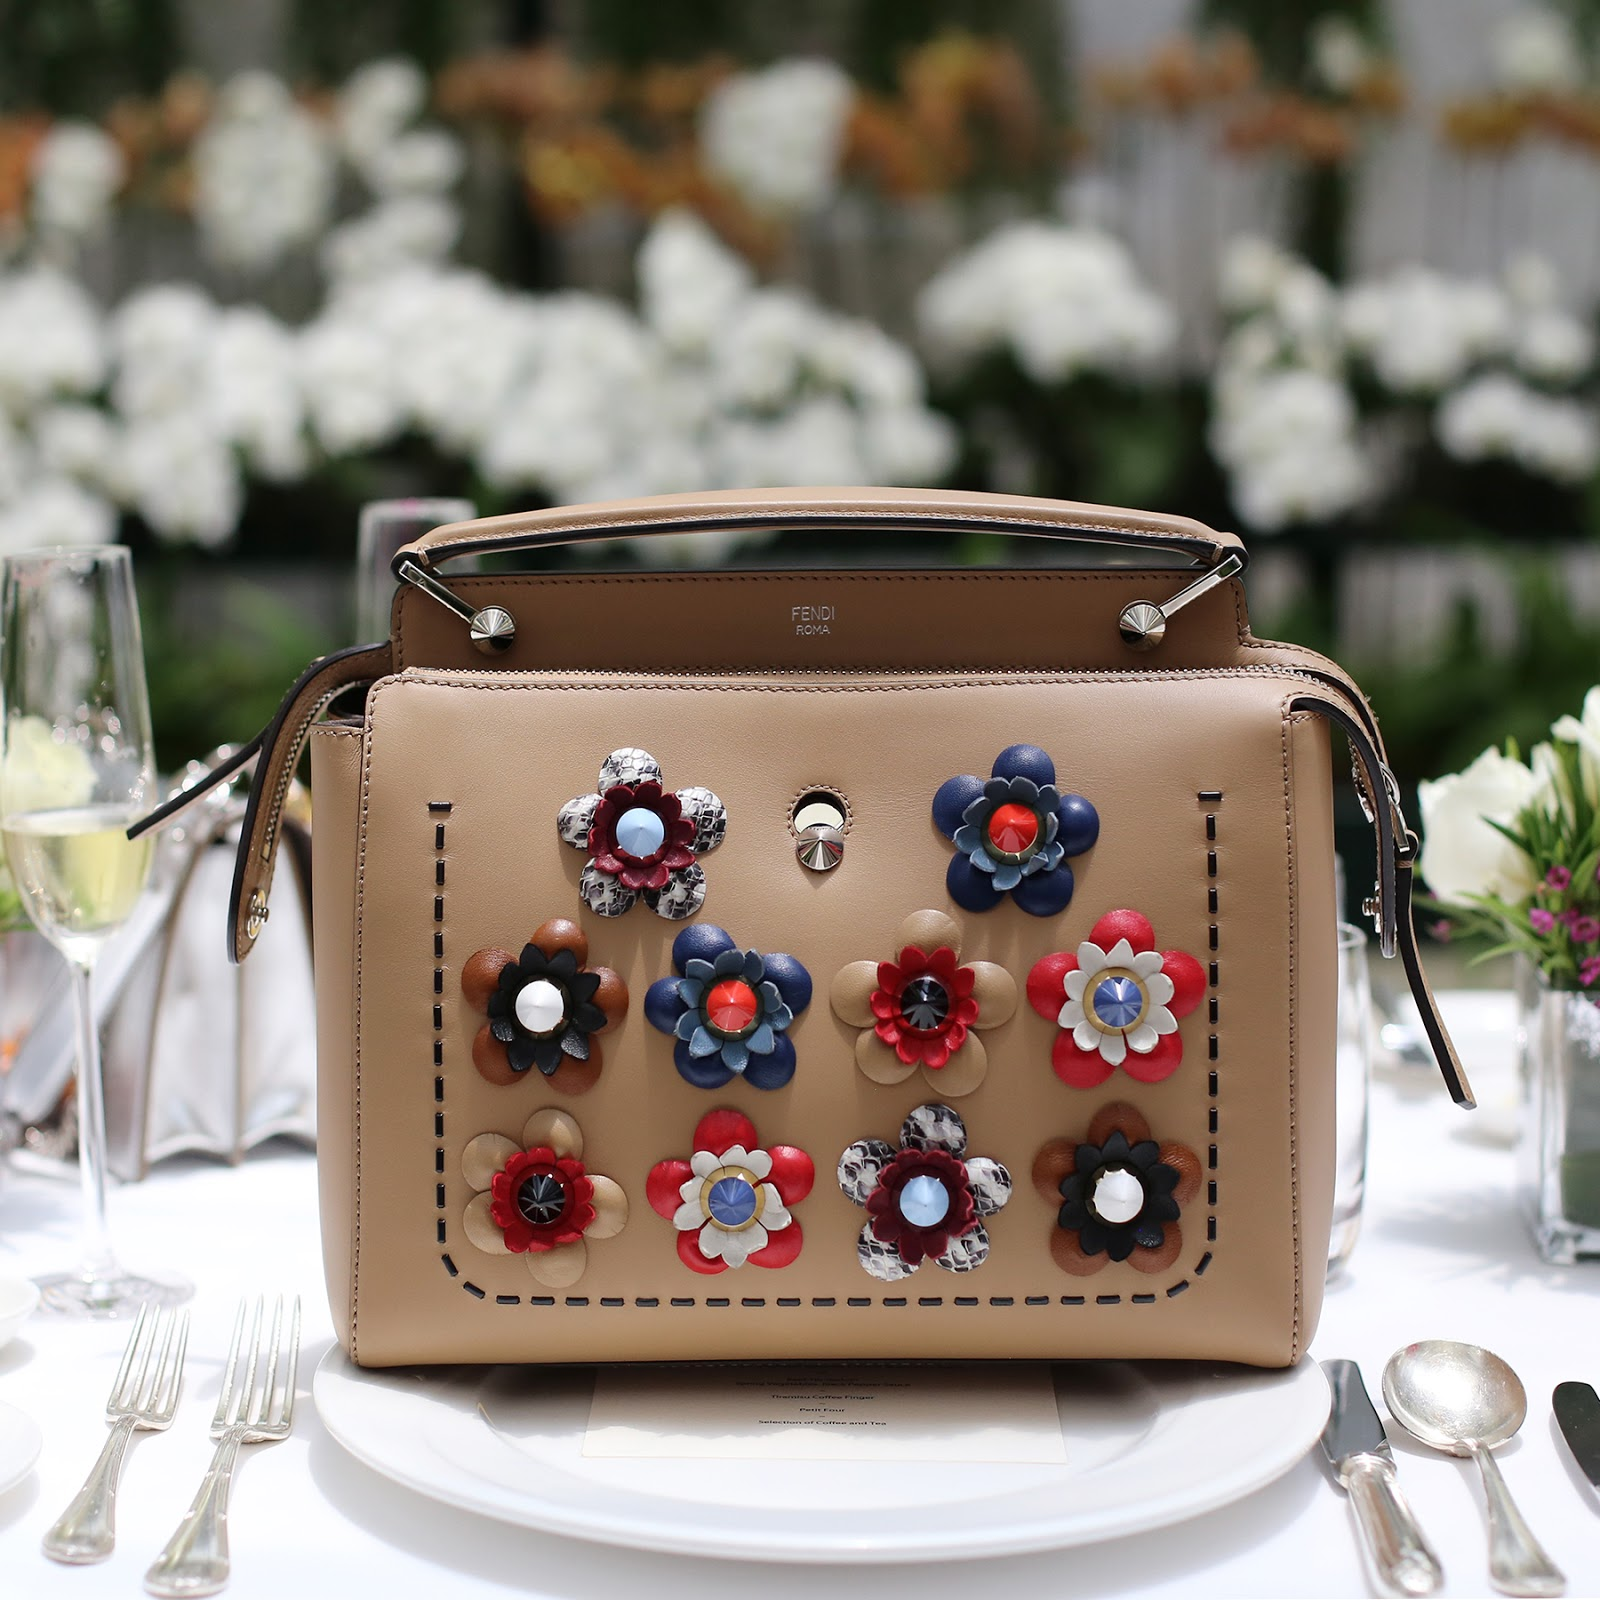 A Birthday Lunch hosted by Fendi at The Majestic Kuala Lumpur